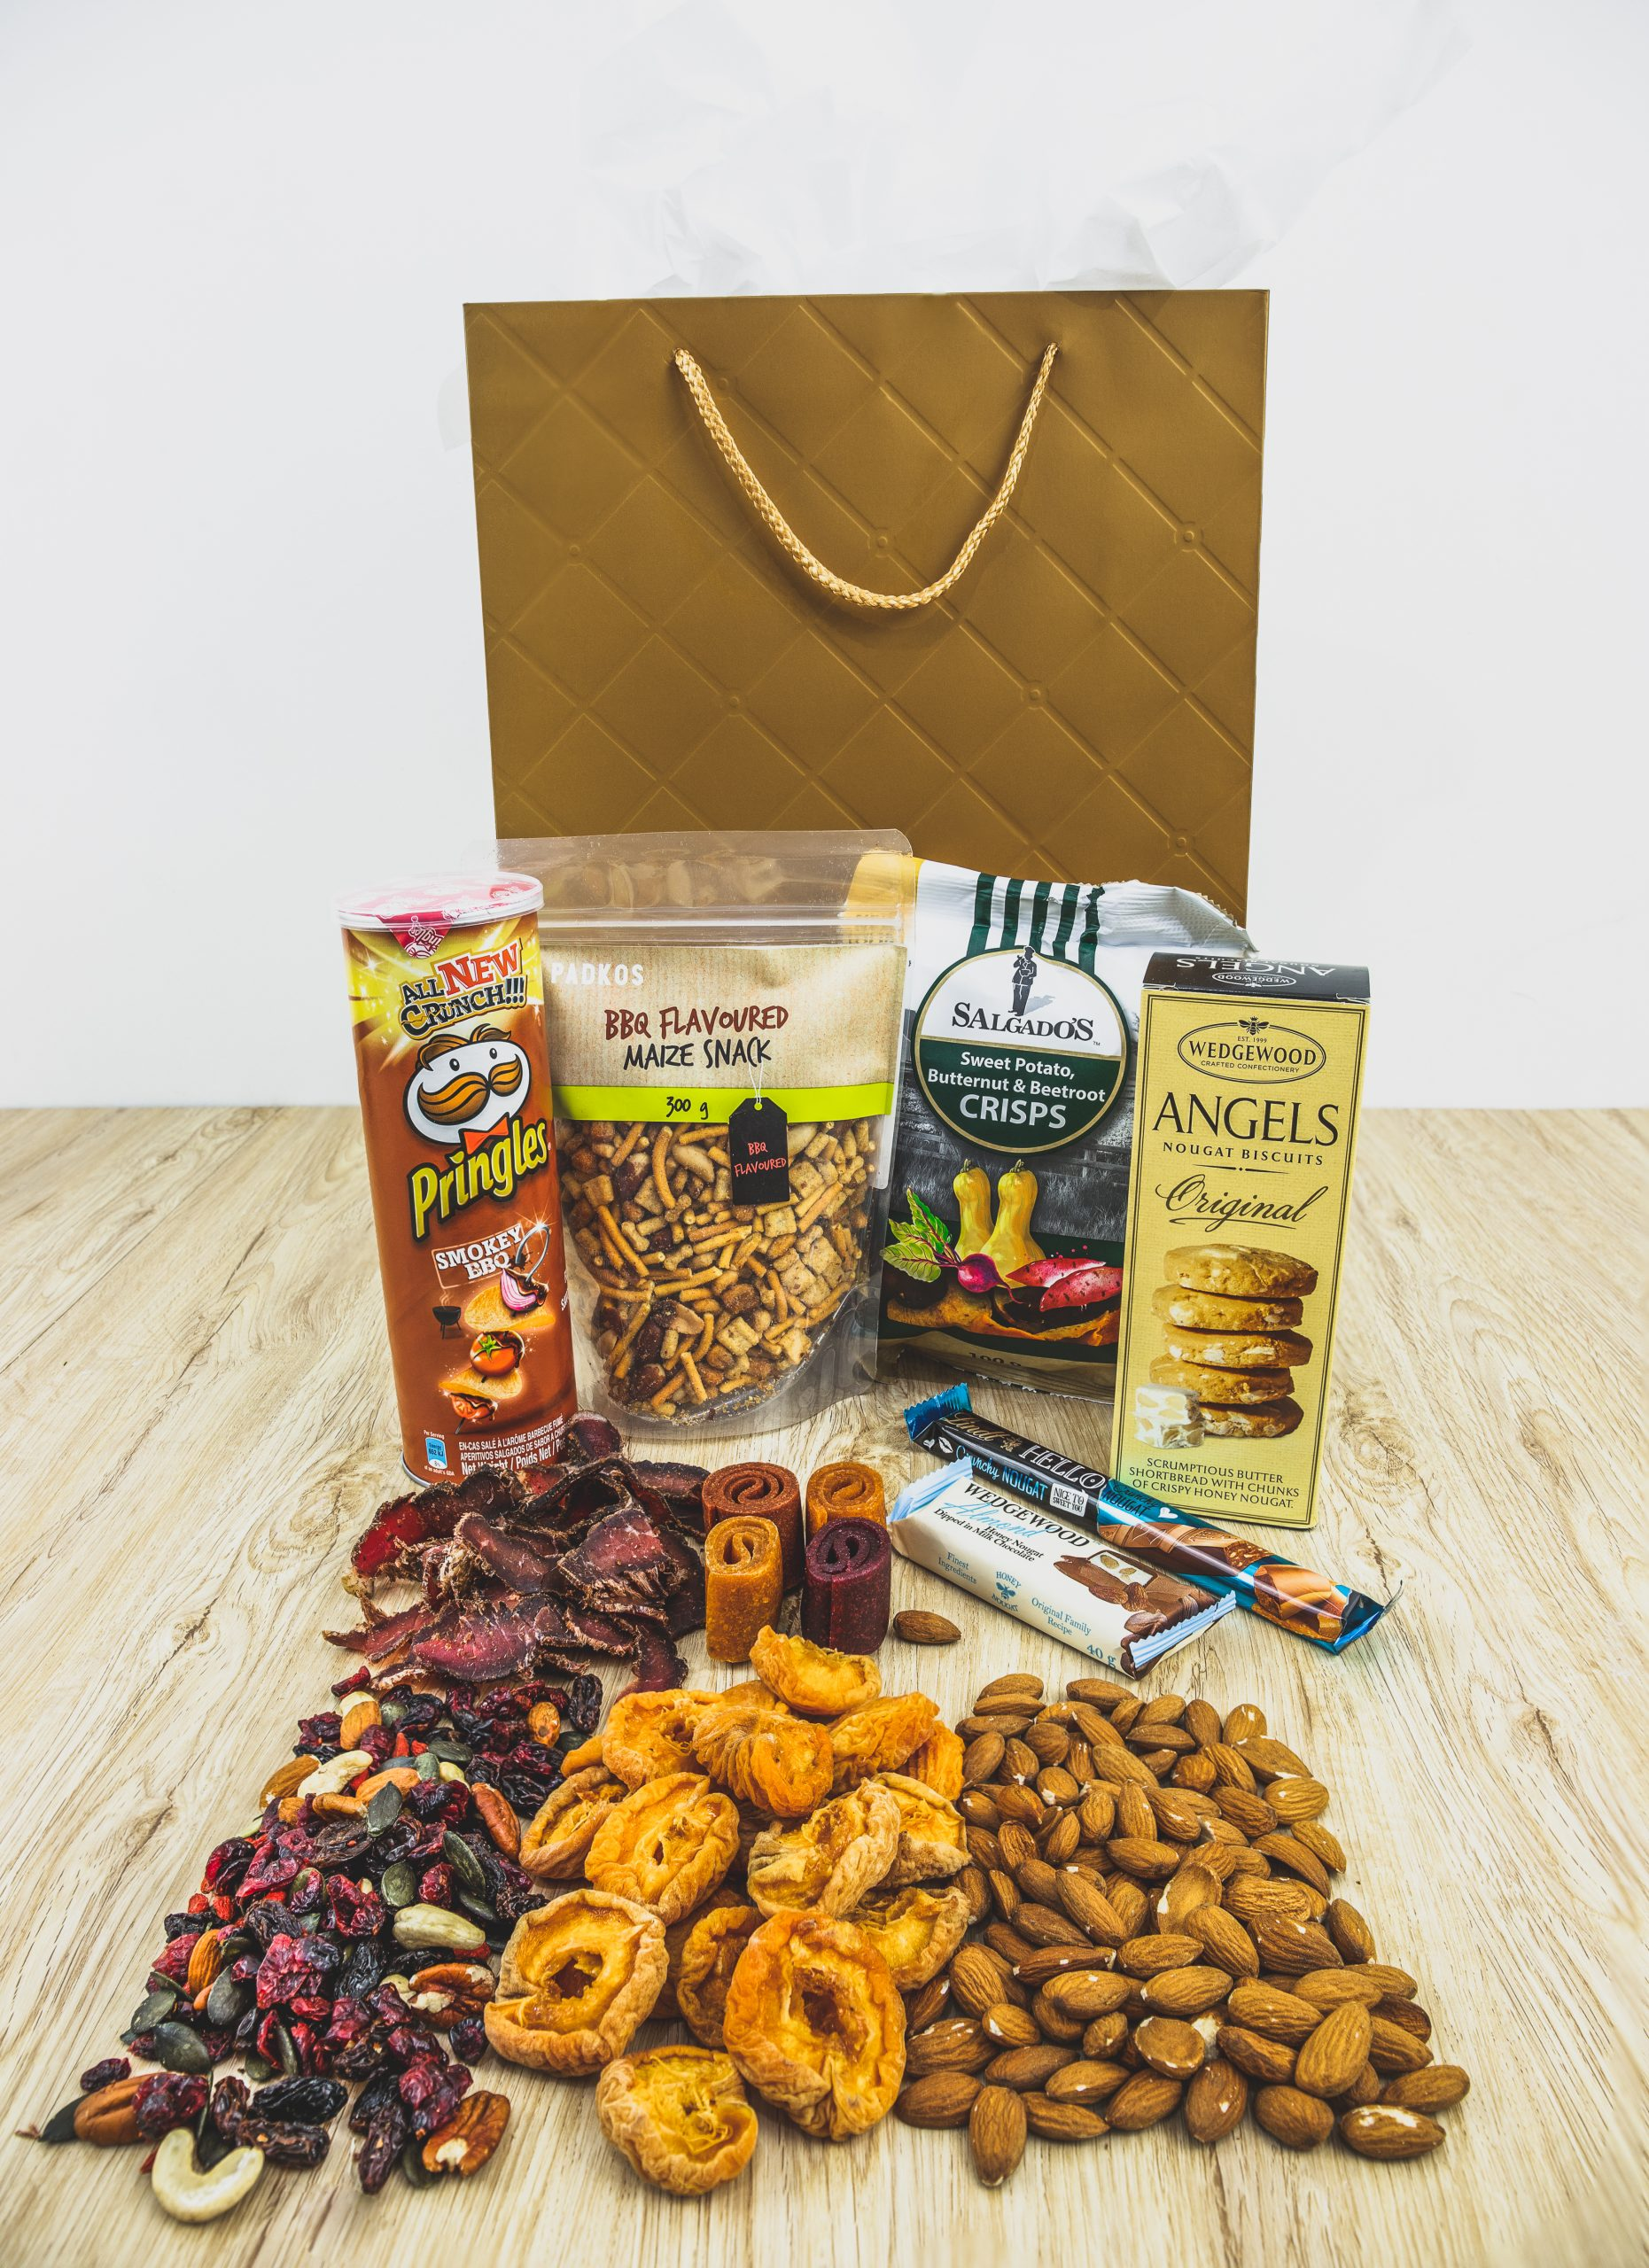 Biltong, Dried Fruit & Nuts, Chips, Crisps, Biscuits And Chocolate Hamper